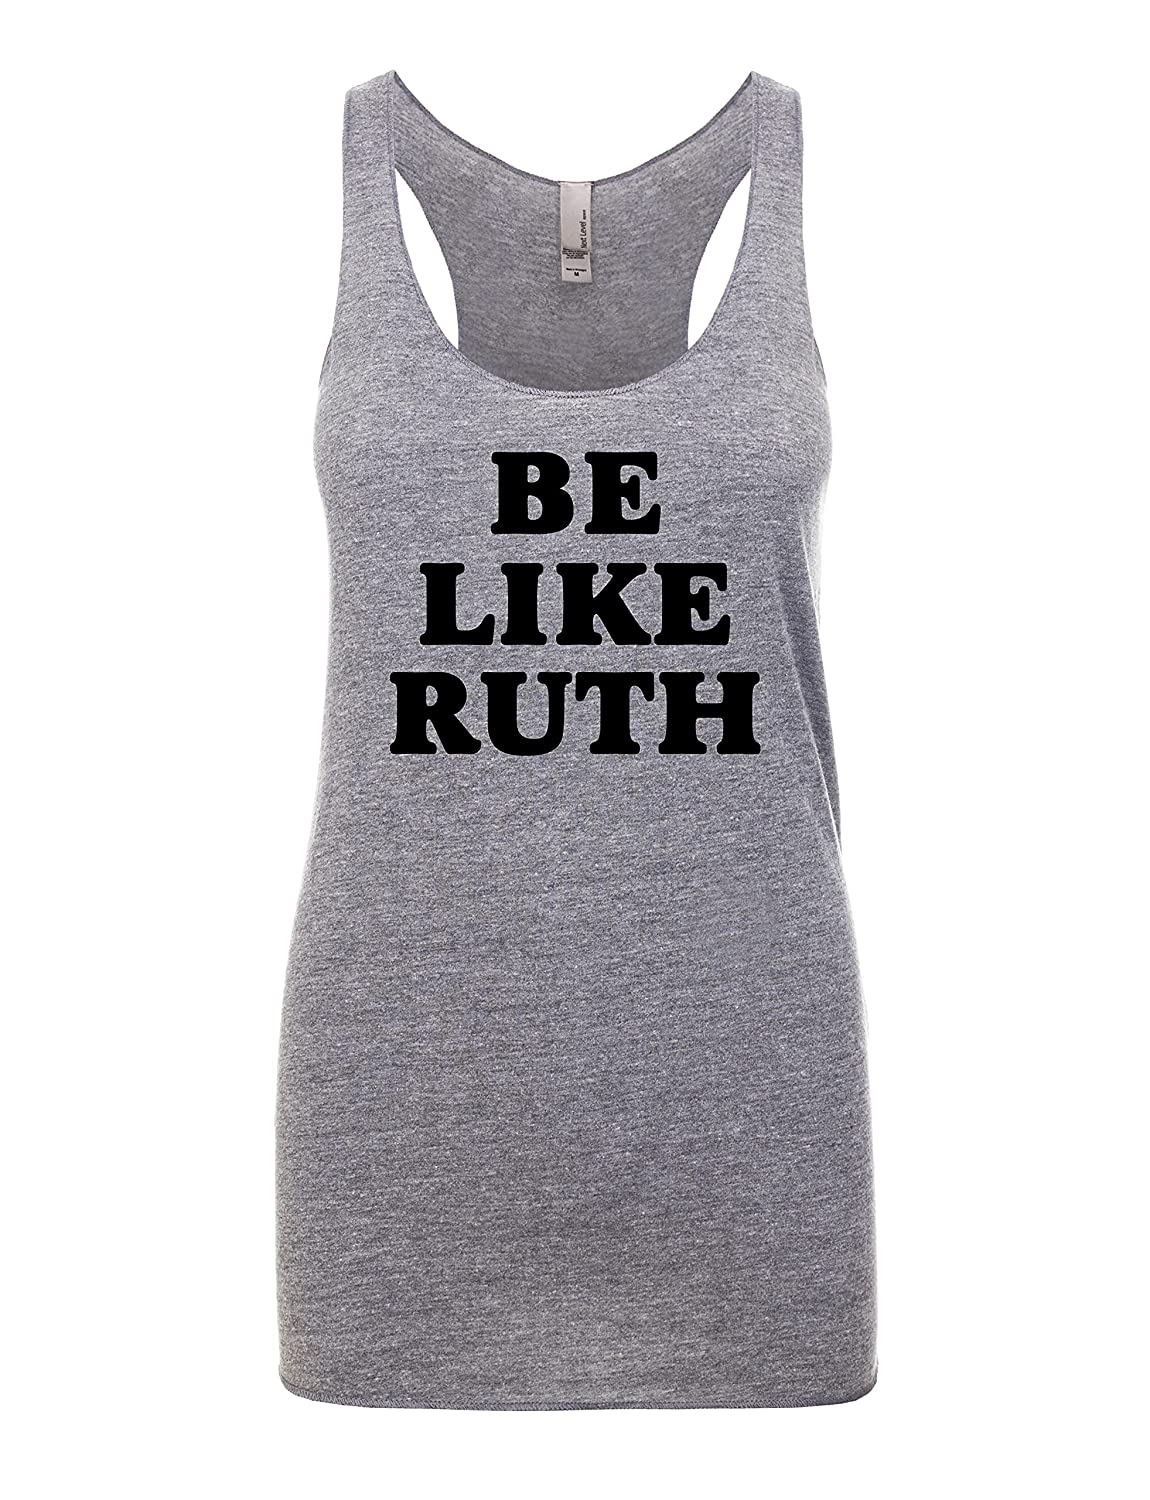 Be Recommended Like Ruth Women's Graphic Some reservation Racerback Top Tank for Gift Her